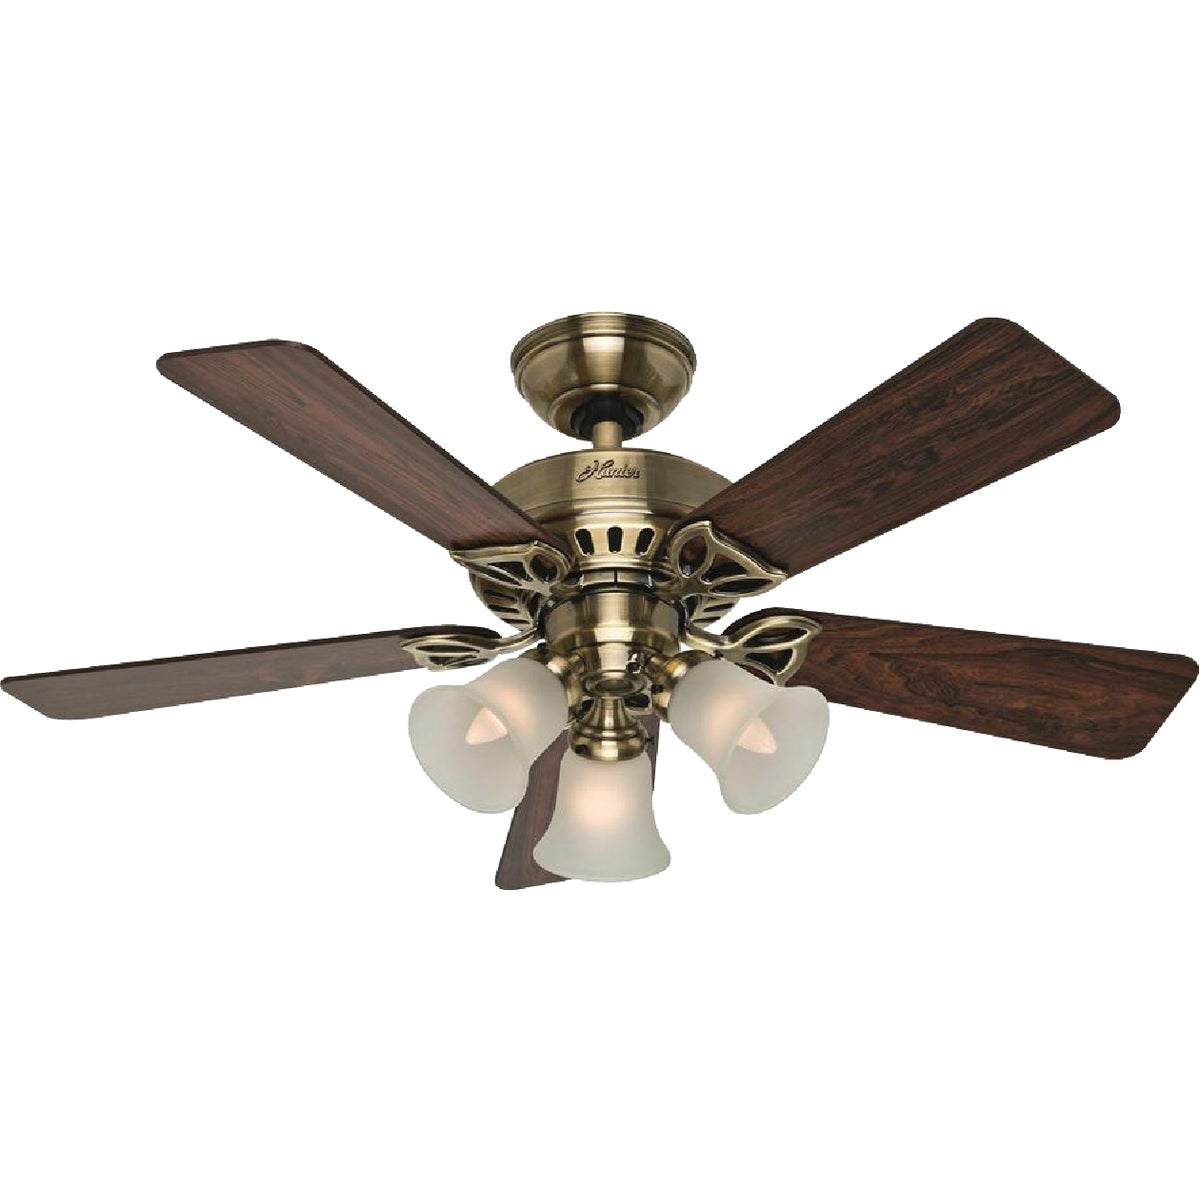 "42"" AB CEIL FAN W/LIGHT - 53078 by Hunter Fan Co"